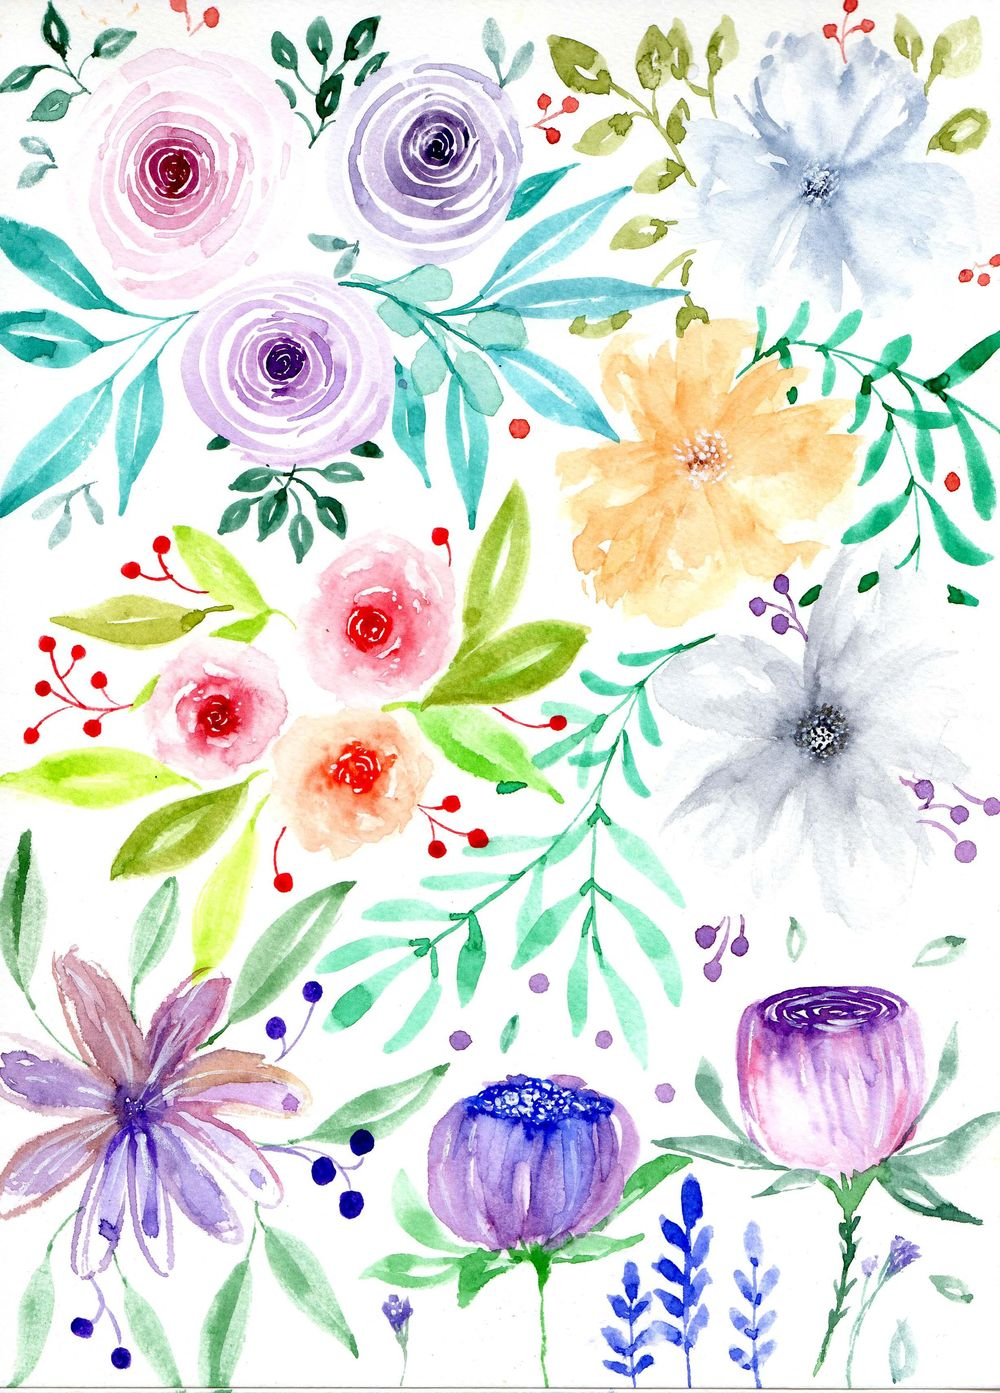 Loose Watercolor Florals - image 1 - student project